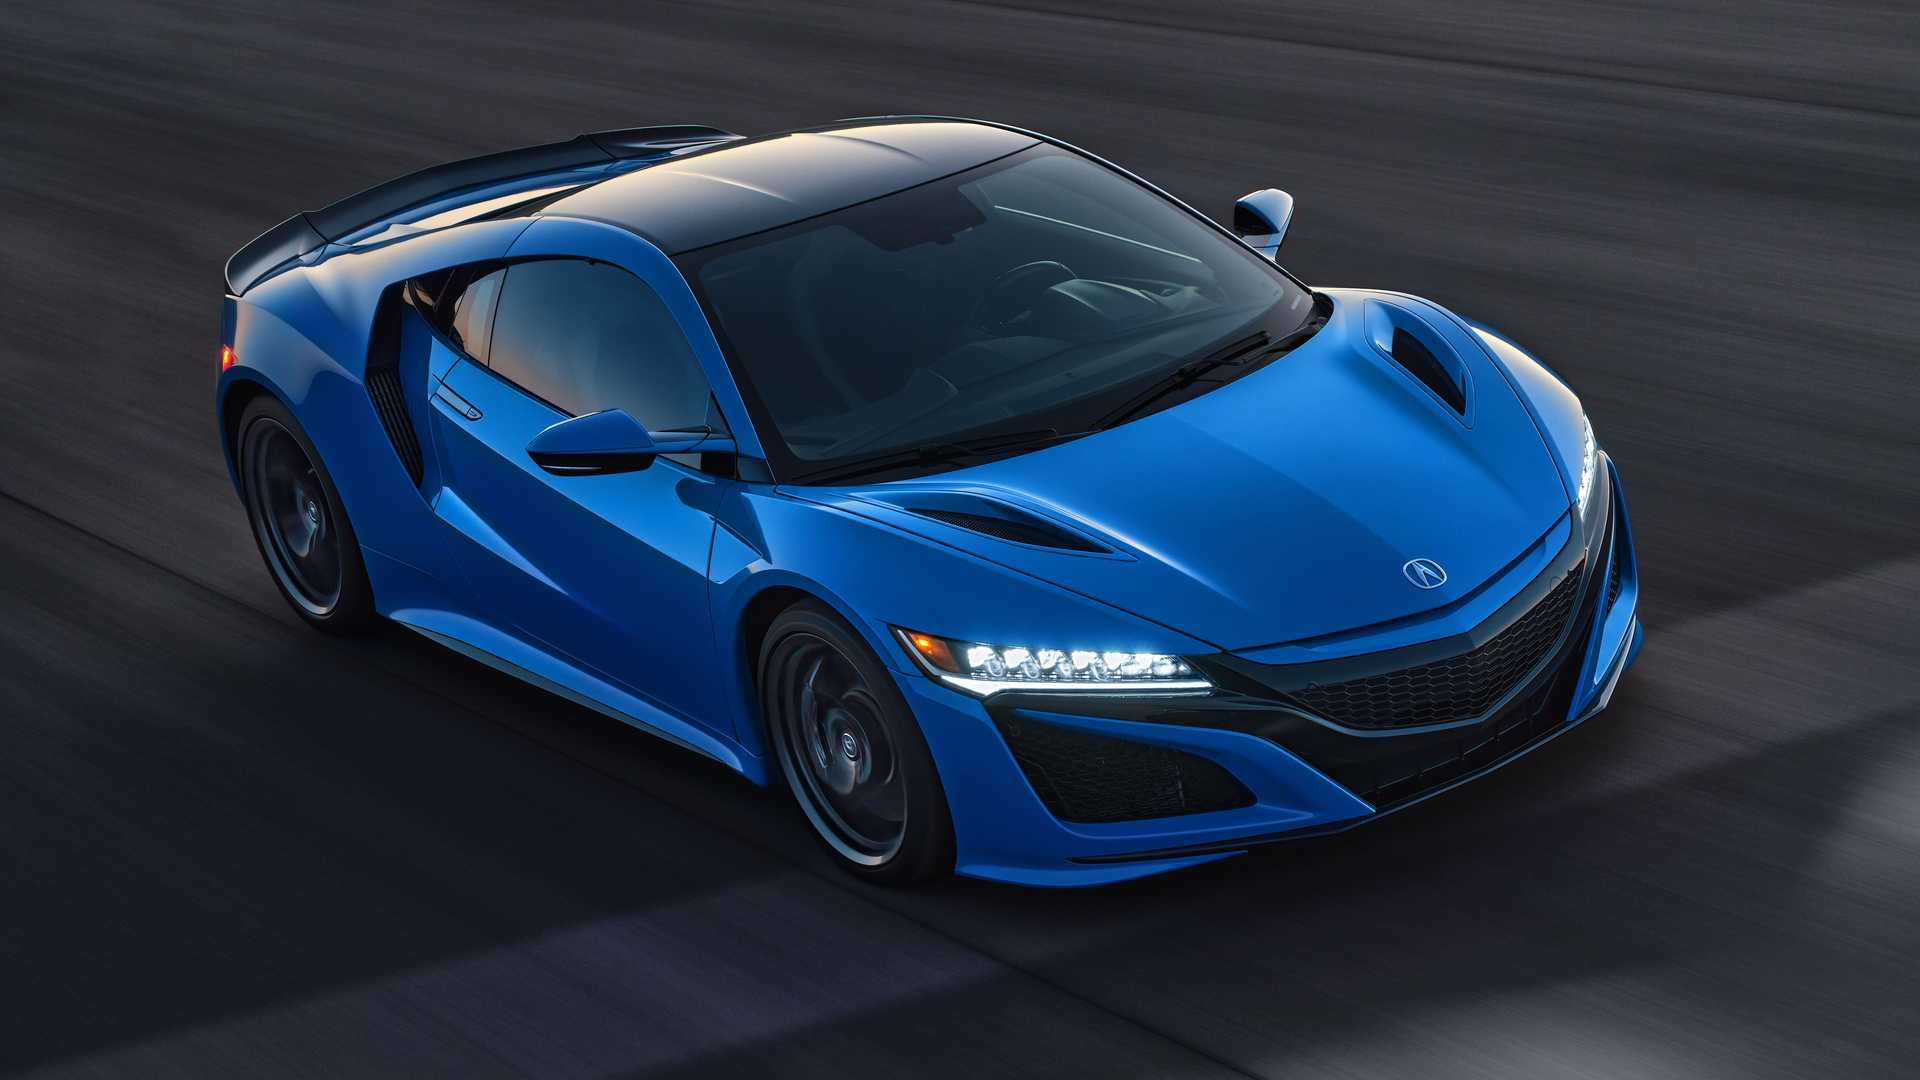 2021 Acura NSX Front - 5293029